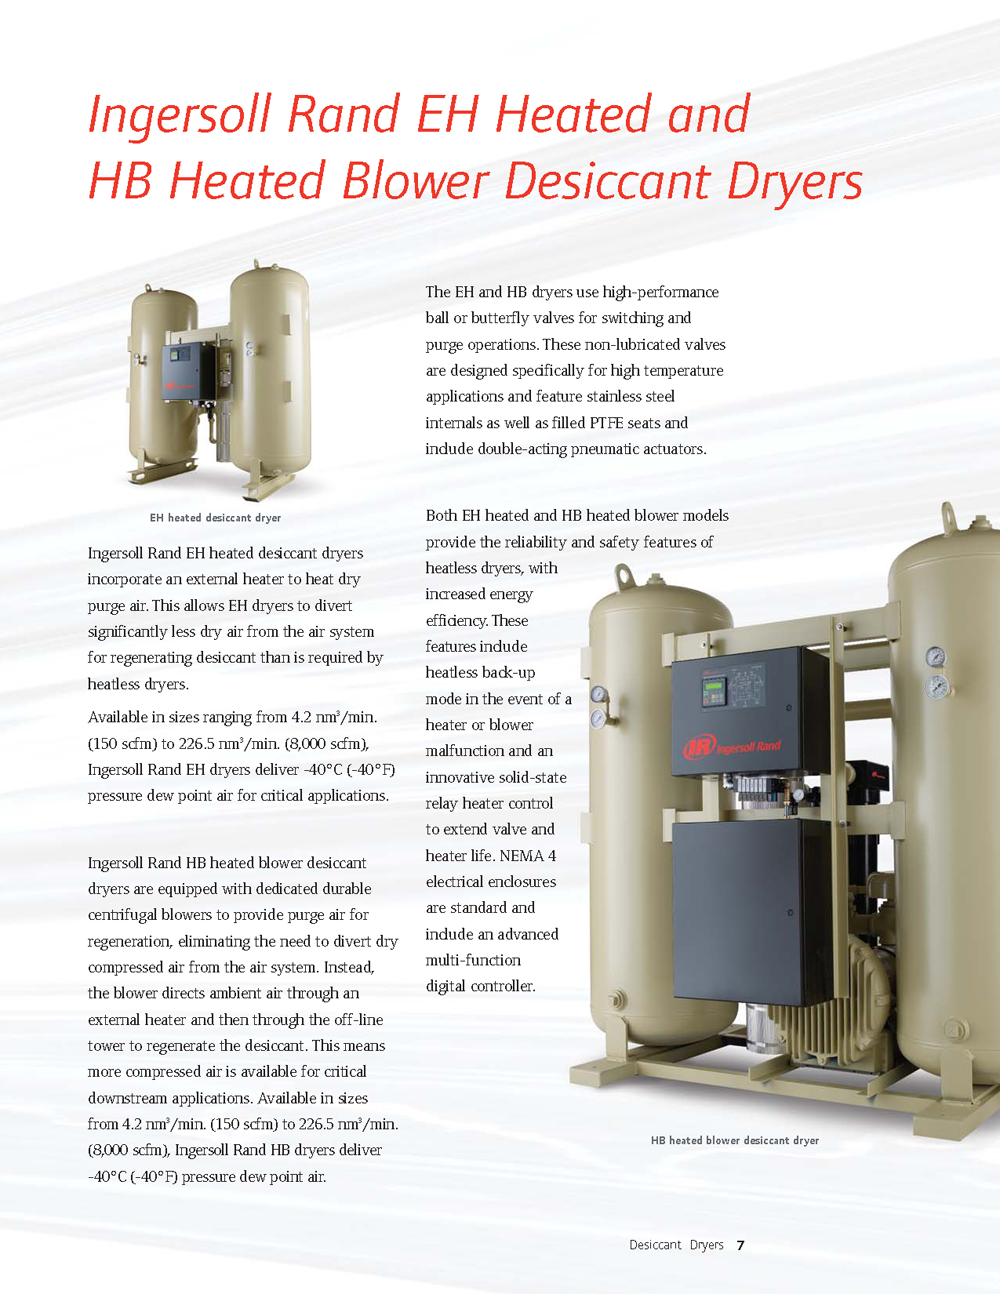 Ingersoll Rand Desiccant Ary Dryers